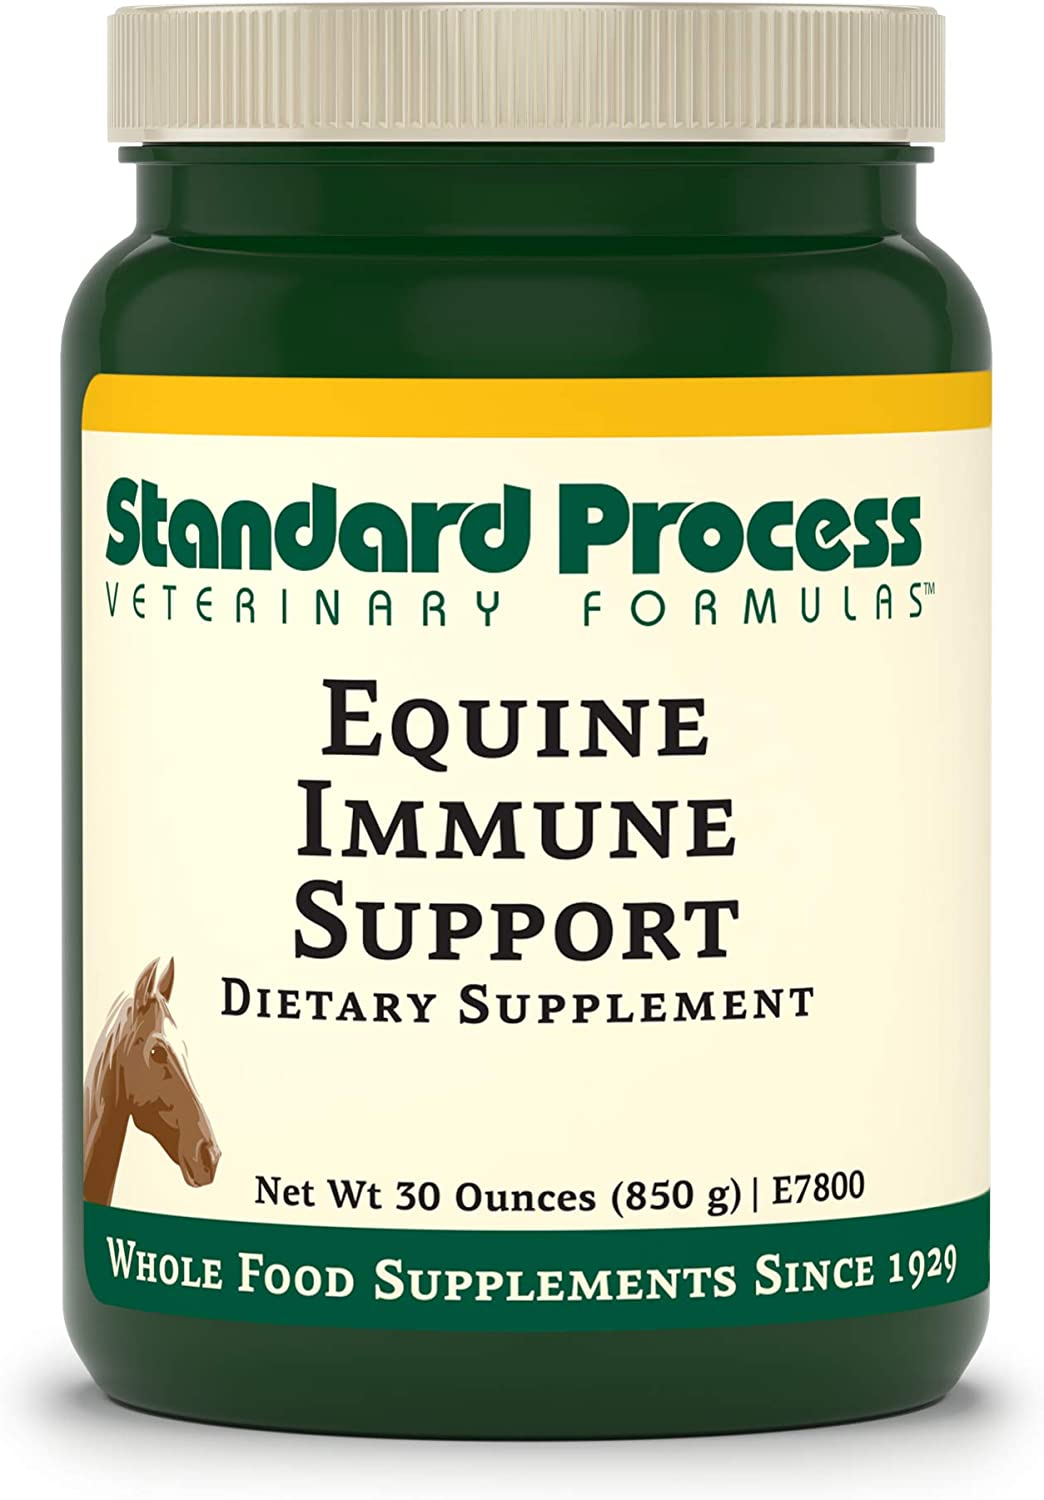 Standard Process Equine Immune Support - Whole Food Horse Supplies for Immune Support with Whey Protein, Magnesium Citrate, Kale, Sunflower Lecithin, L-Glutamine, Turmeric Root - 30 Ounce